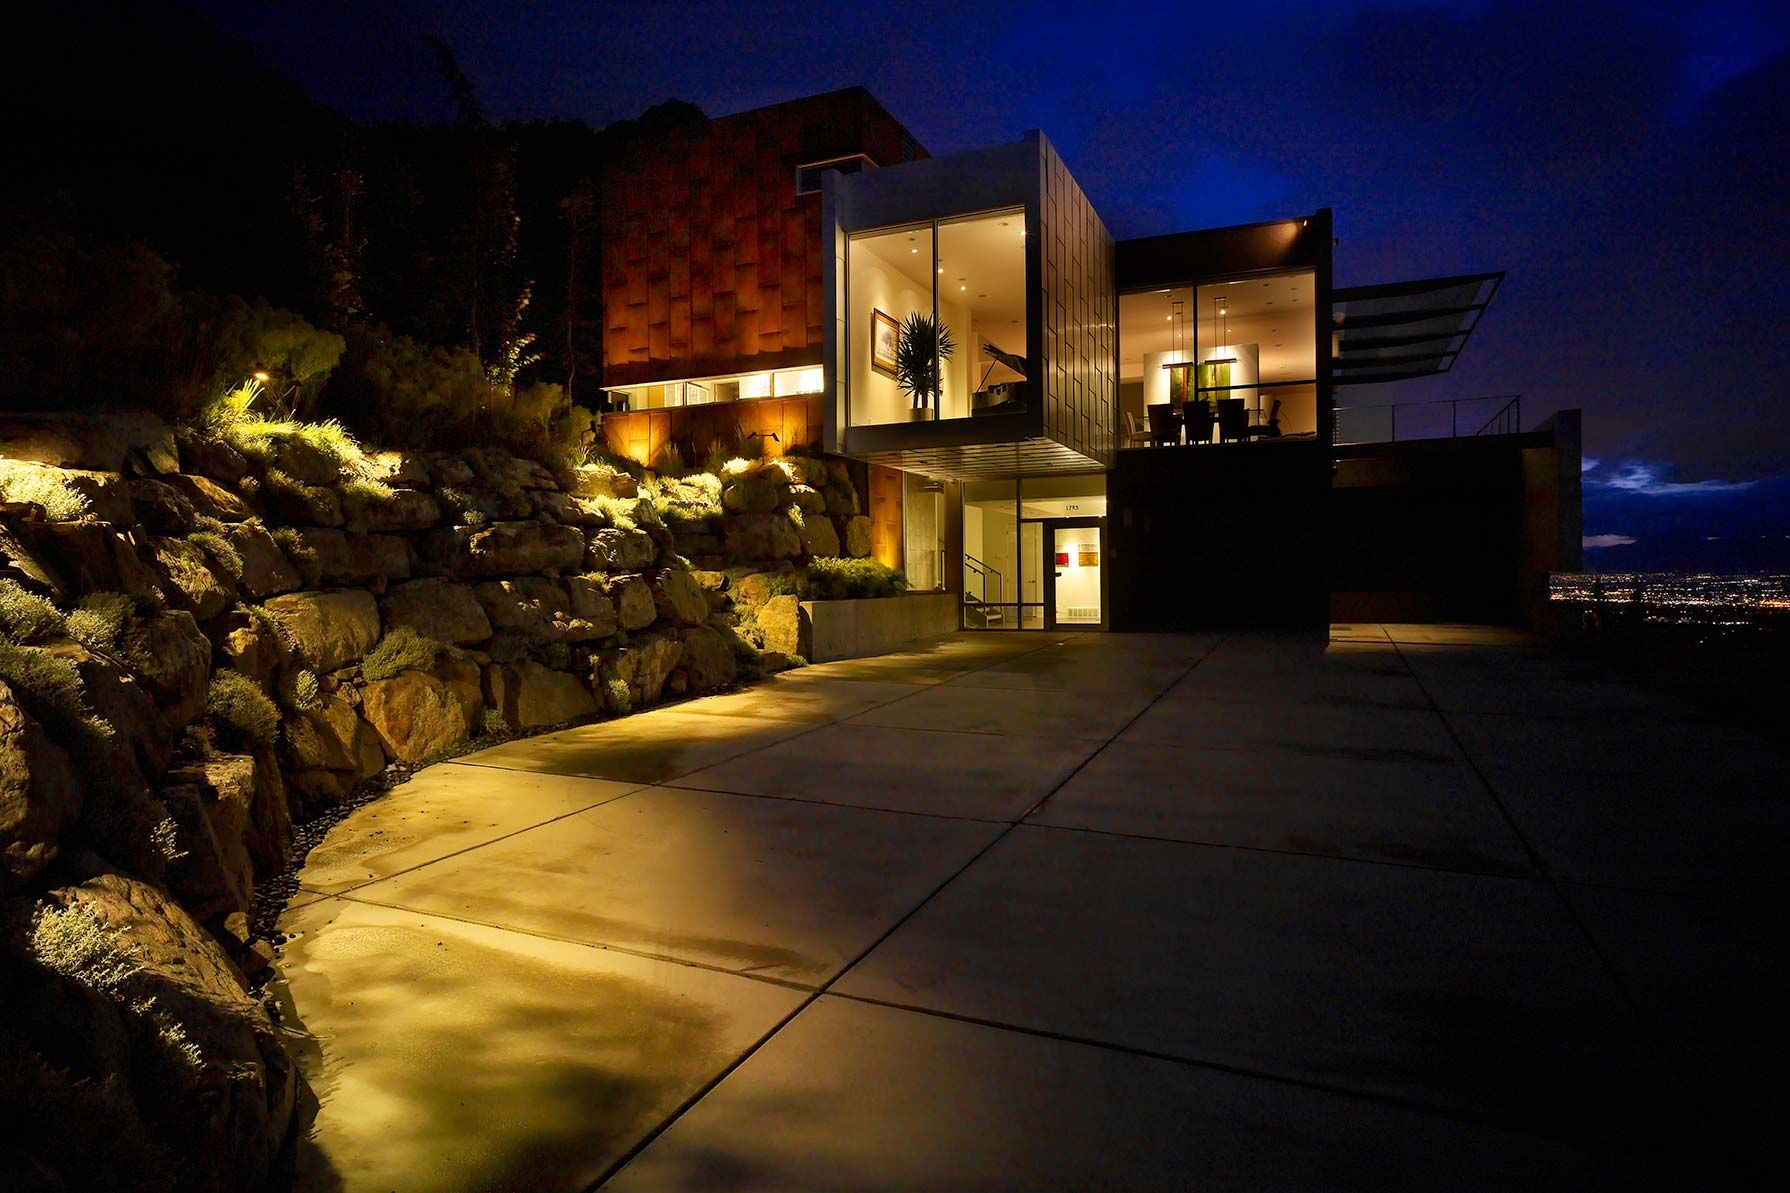 Collection Outdoor Wall Wash Lighting Pictures Wall Wash Lighting Outdoor Walls Wall Lighting Design